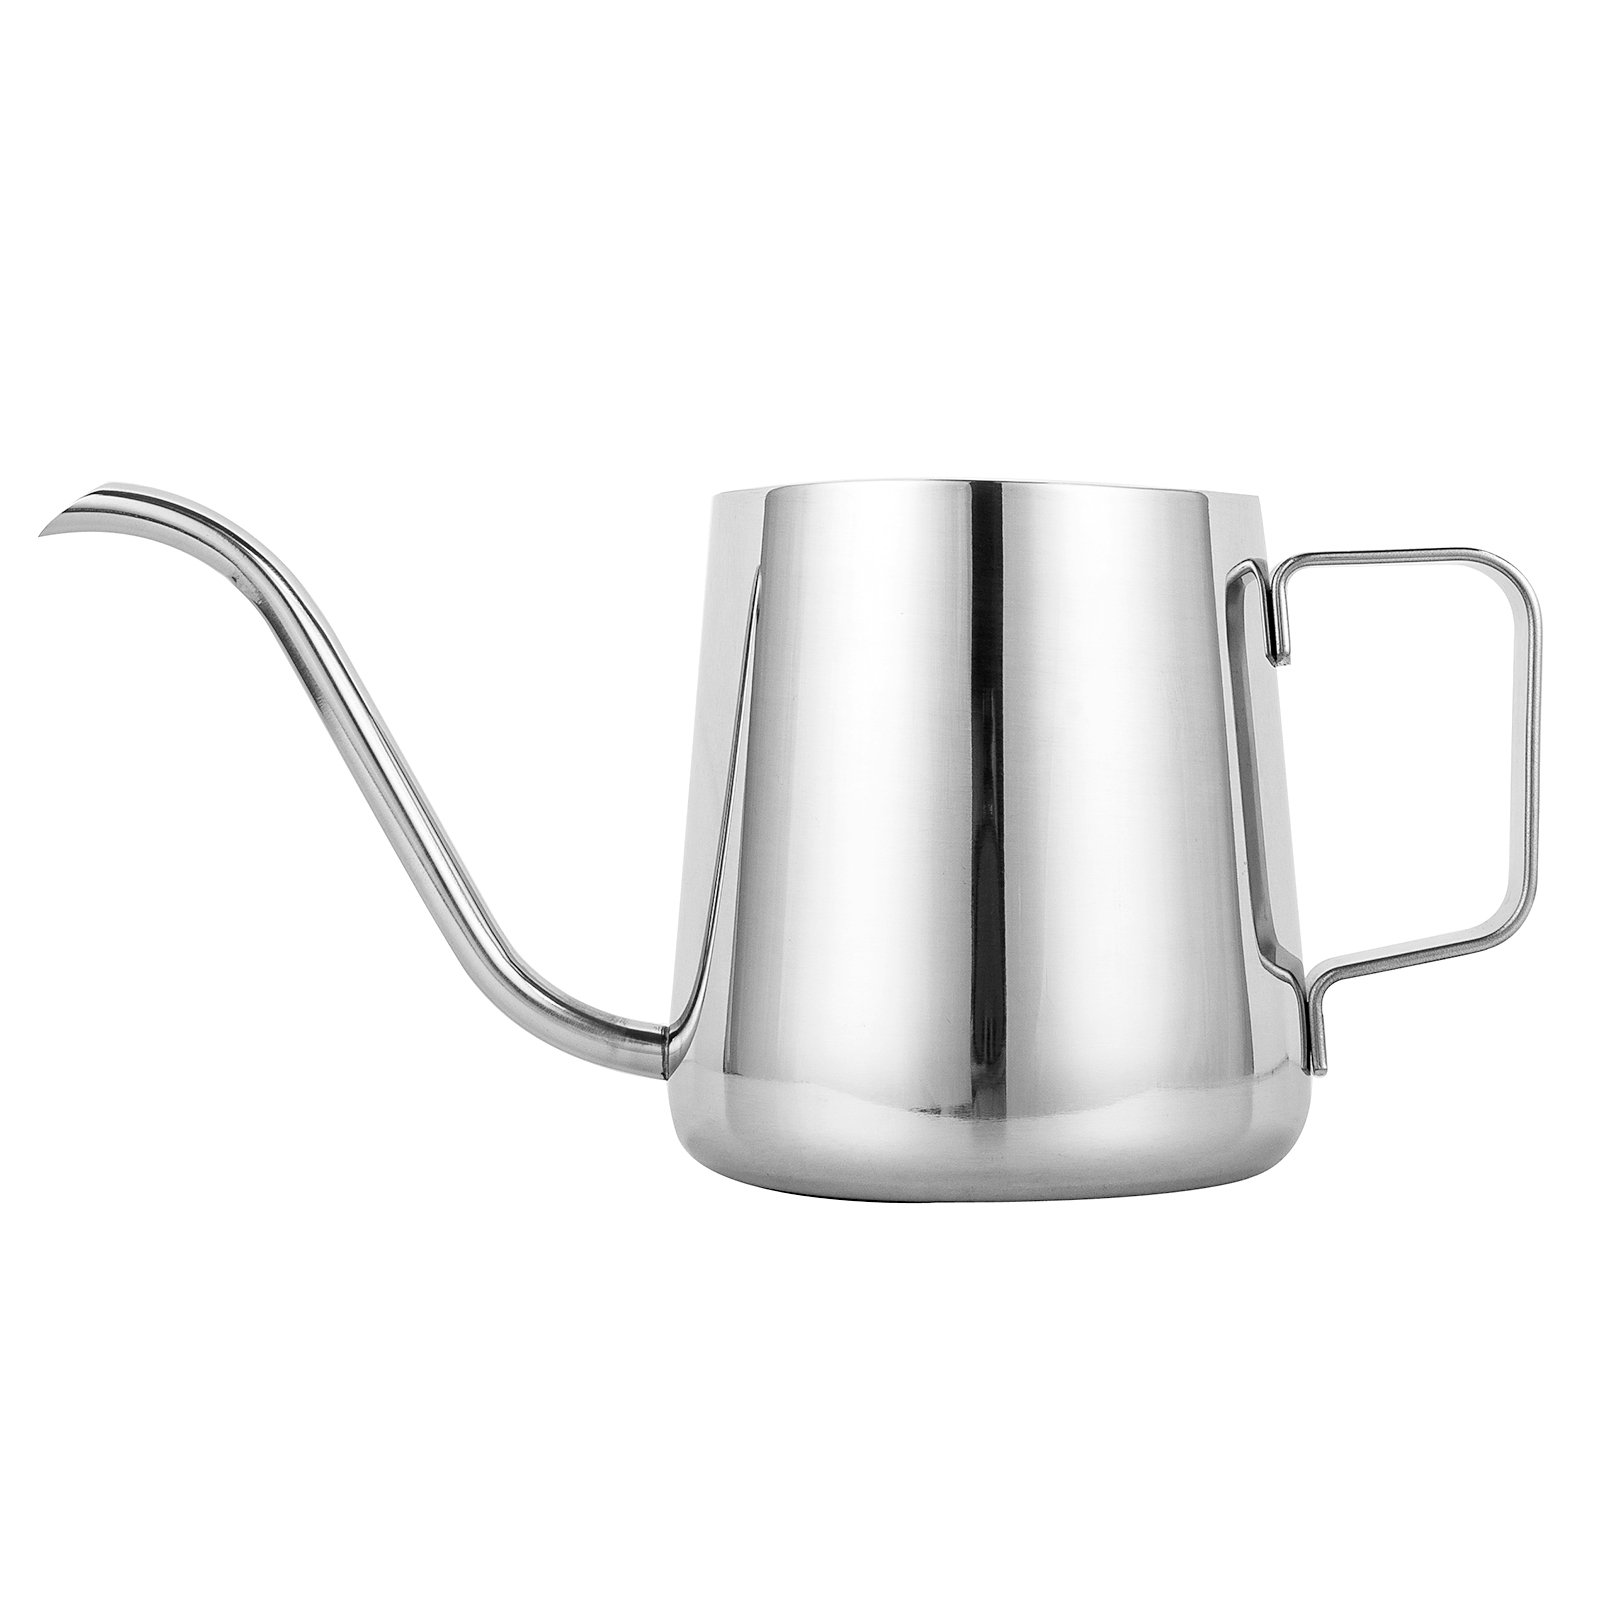 TOP-MAX Long Narrow Spout Coffee Pot (12oz /350ML) - 304 Stainless Steel with Hanging Ear Hand Blunt Pouring Over Gooseneck Kettle for Coffee & Tea